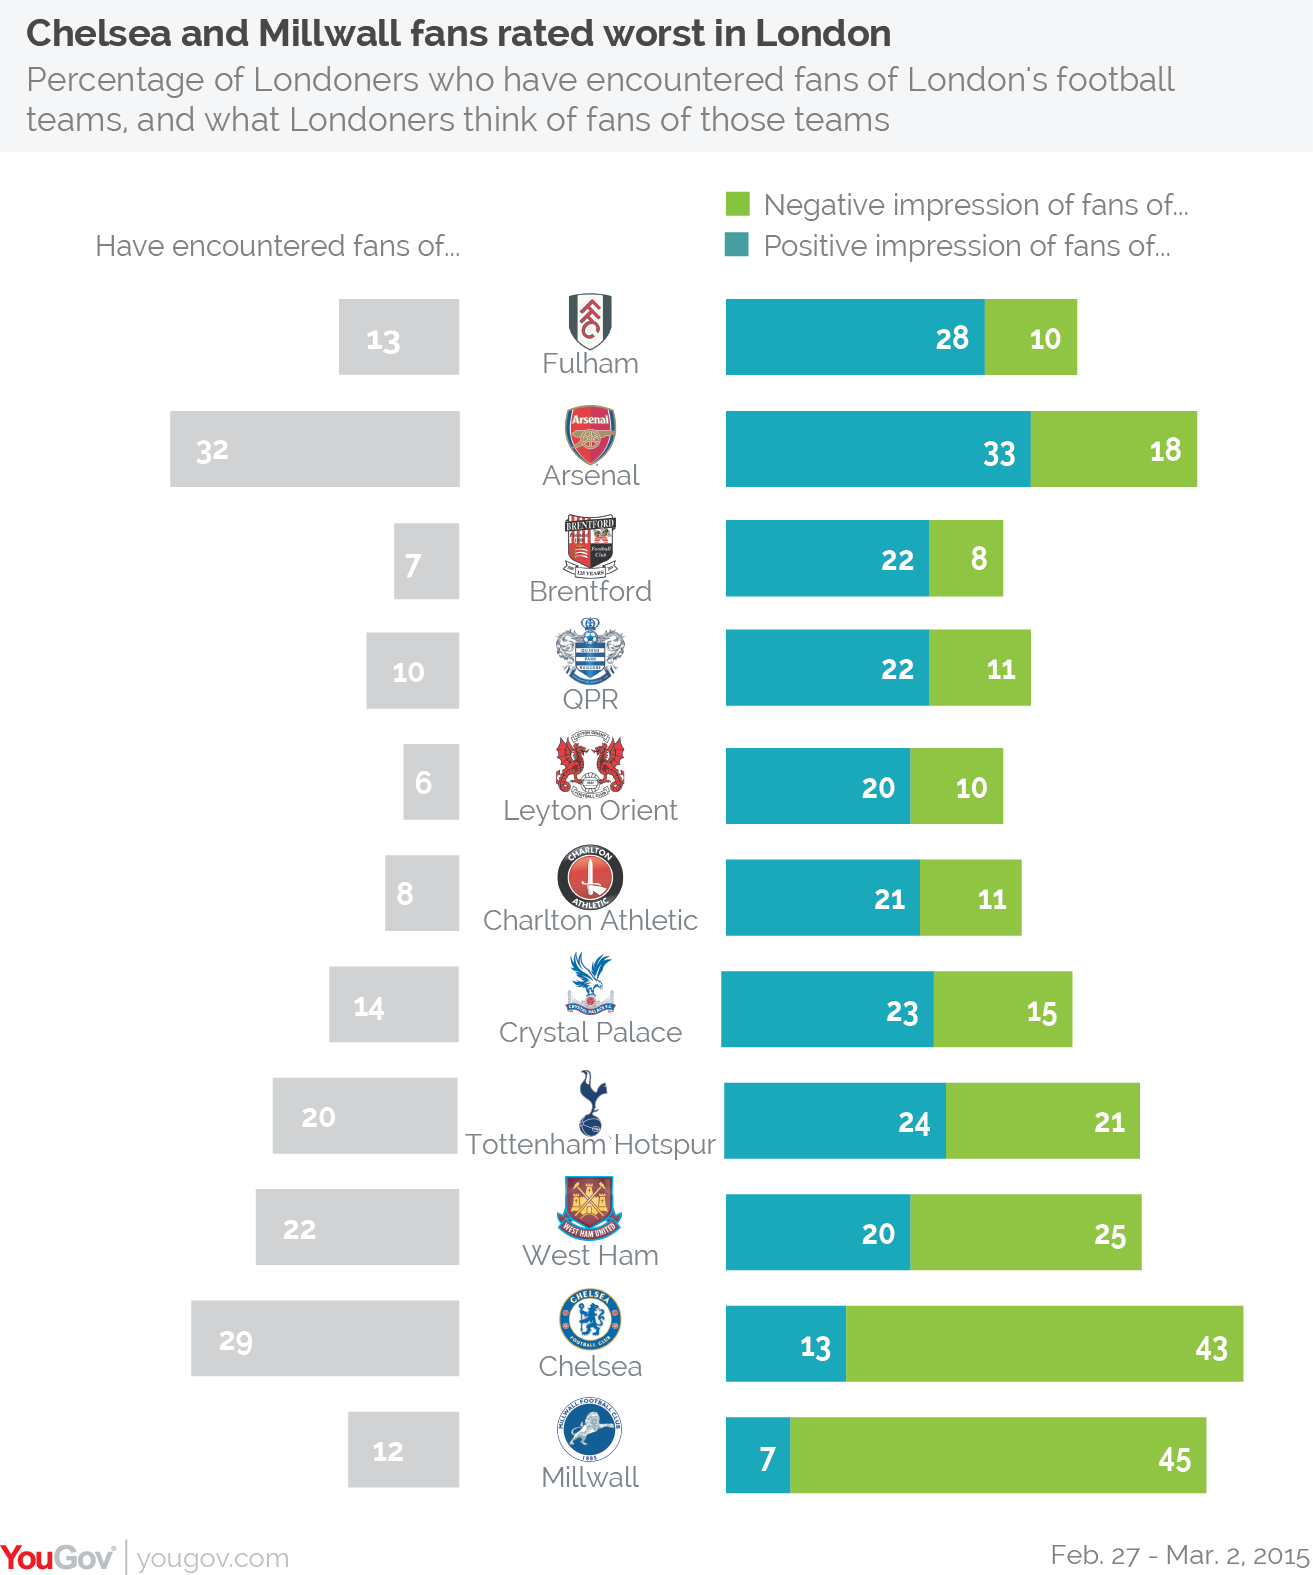 Fans of Chelsea and Millwall rated worst in London | YouGov